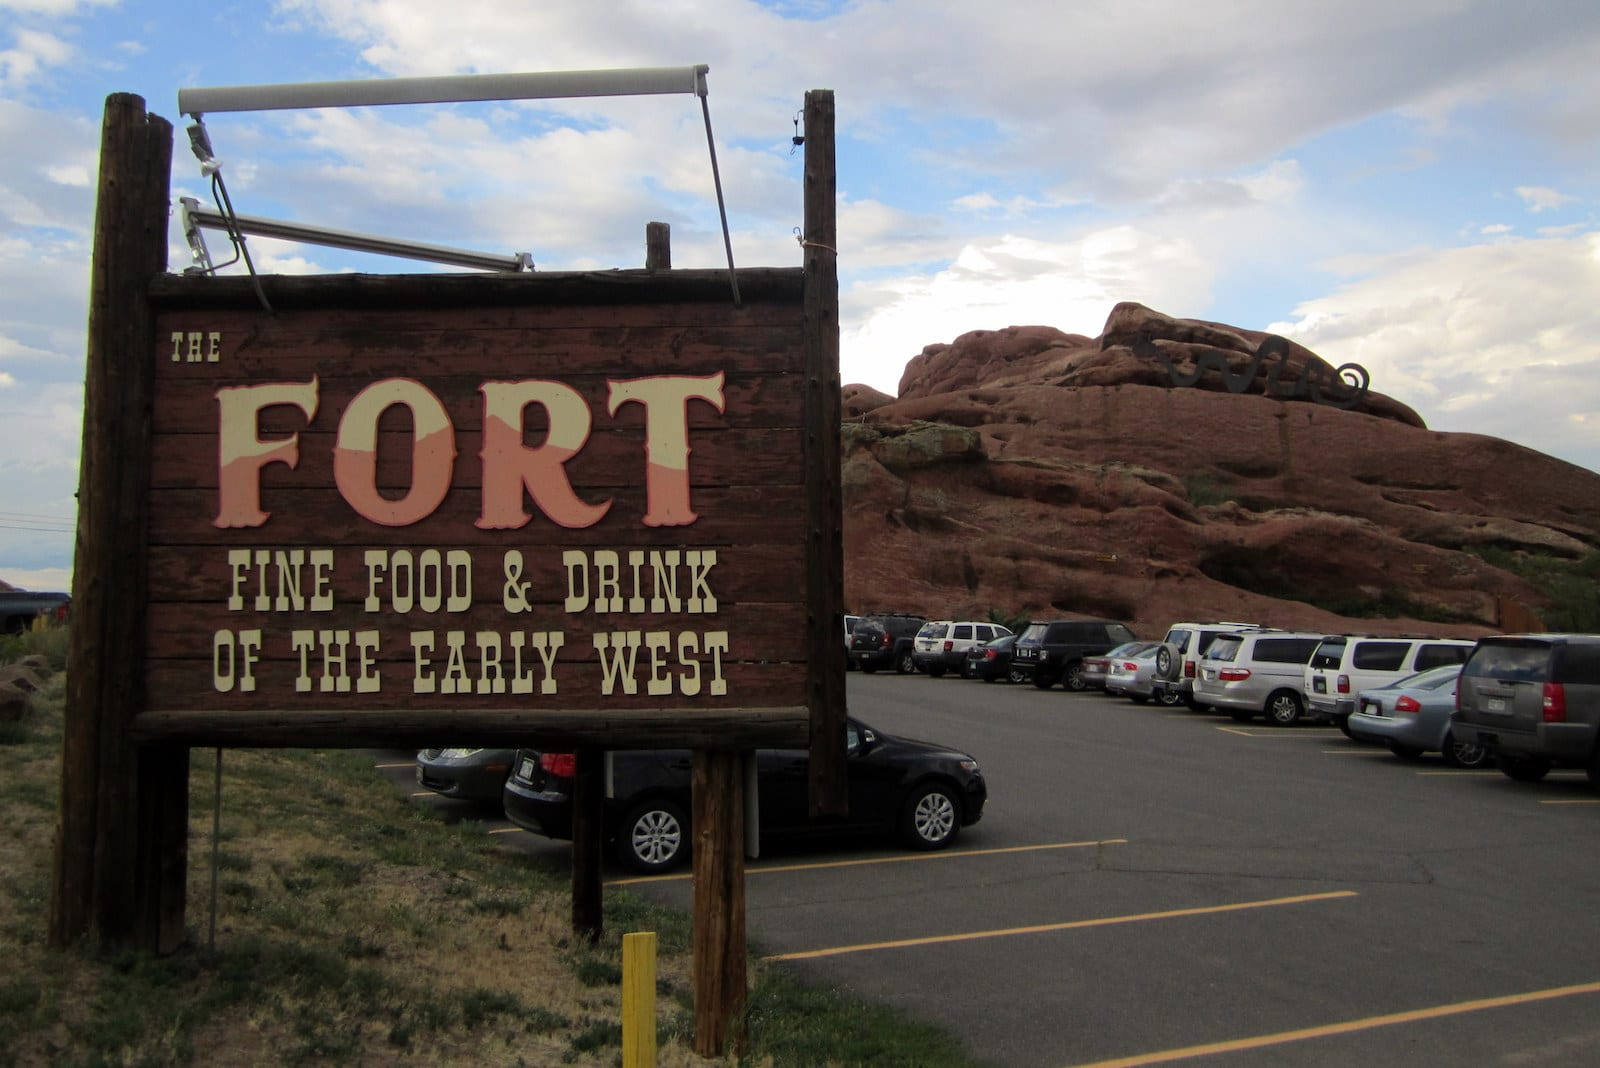 The Fort Restaurant Morrison CO Welcome Sign